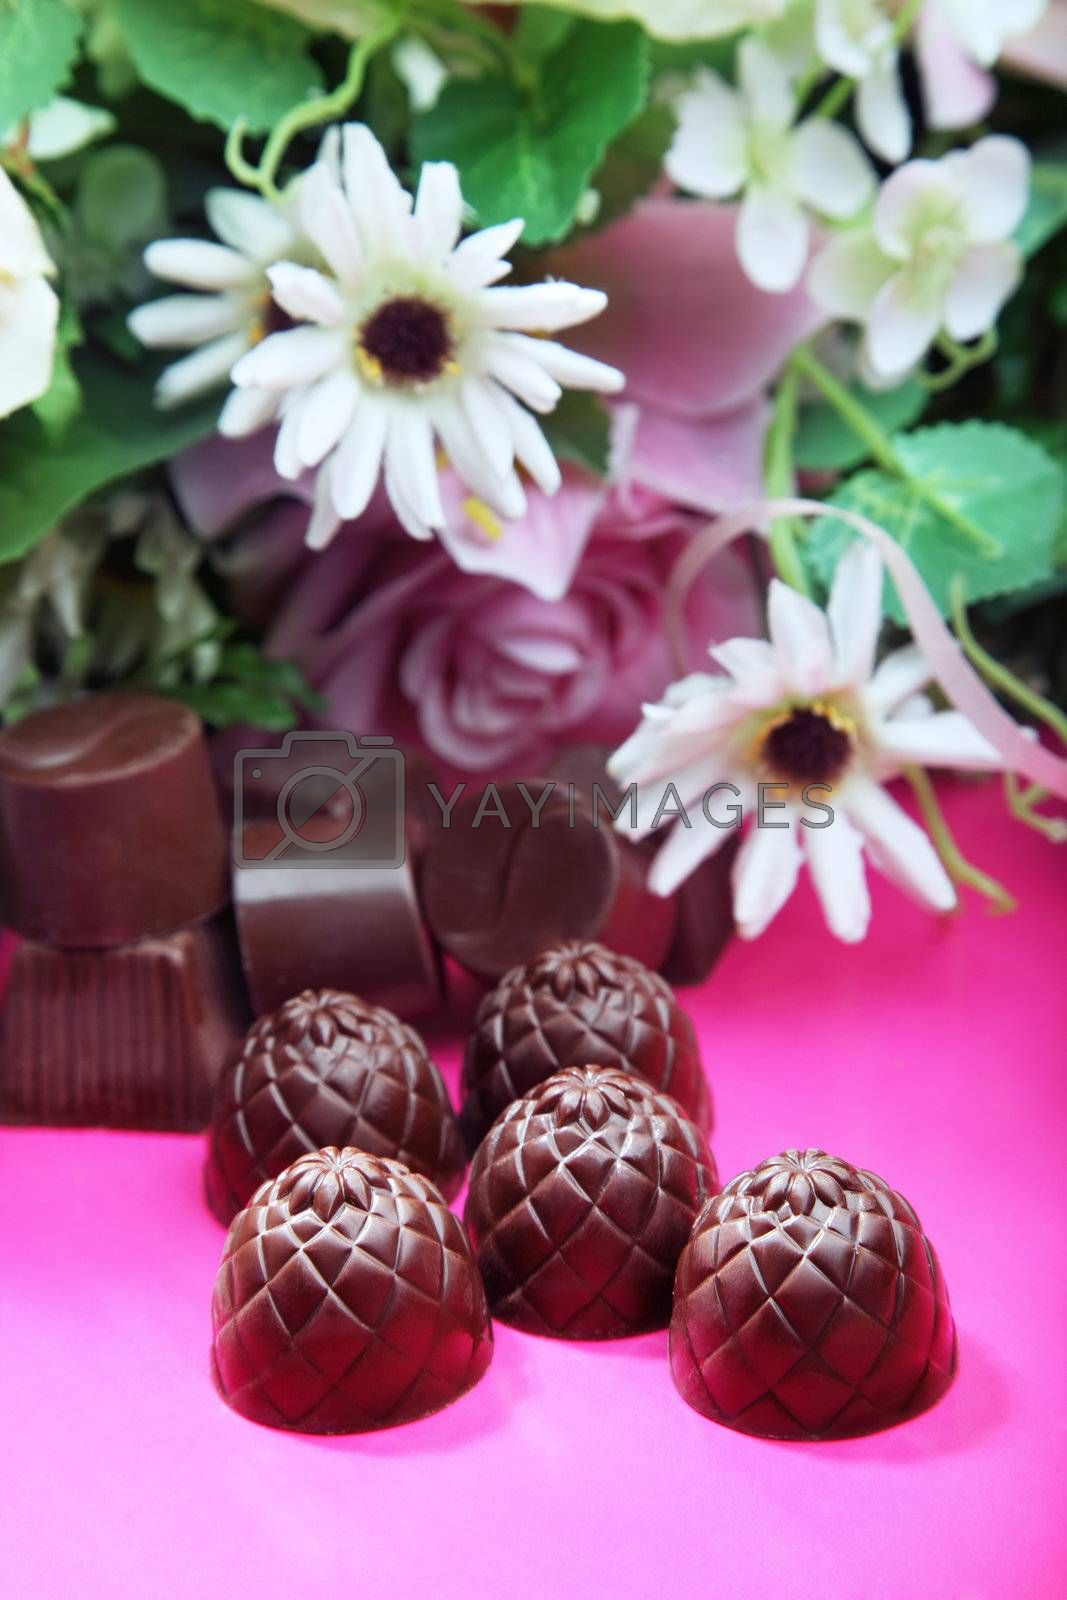 Chocolate sweets and flowers by Novic